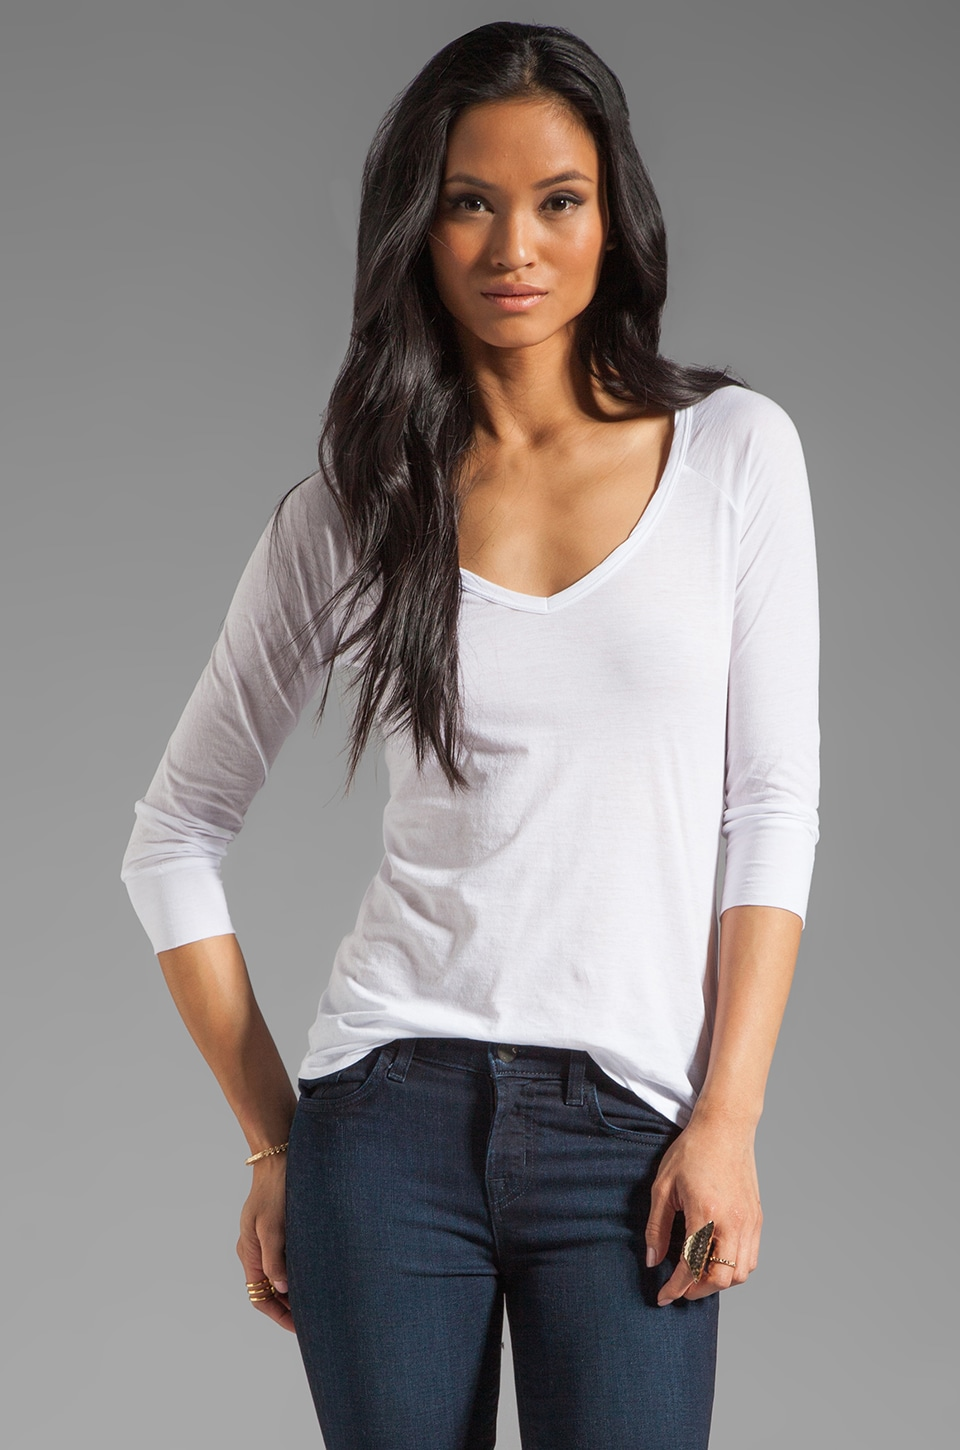 Velvet by Graham & Spencer Sheer Jersey Jalena Top in White